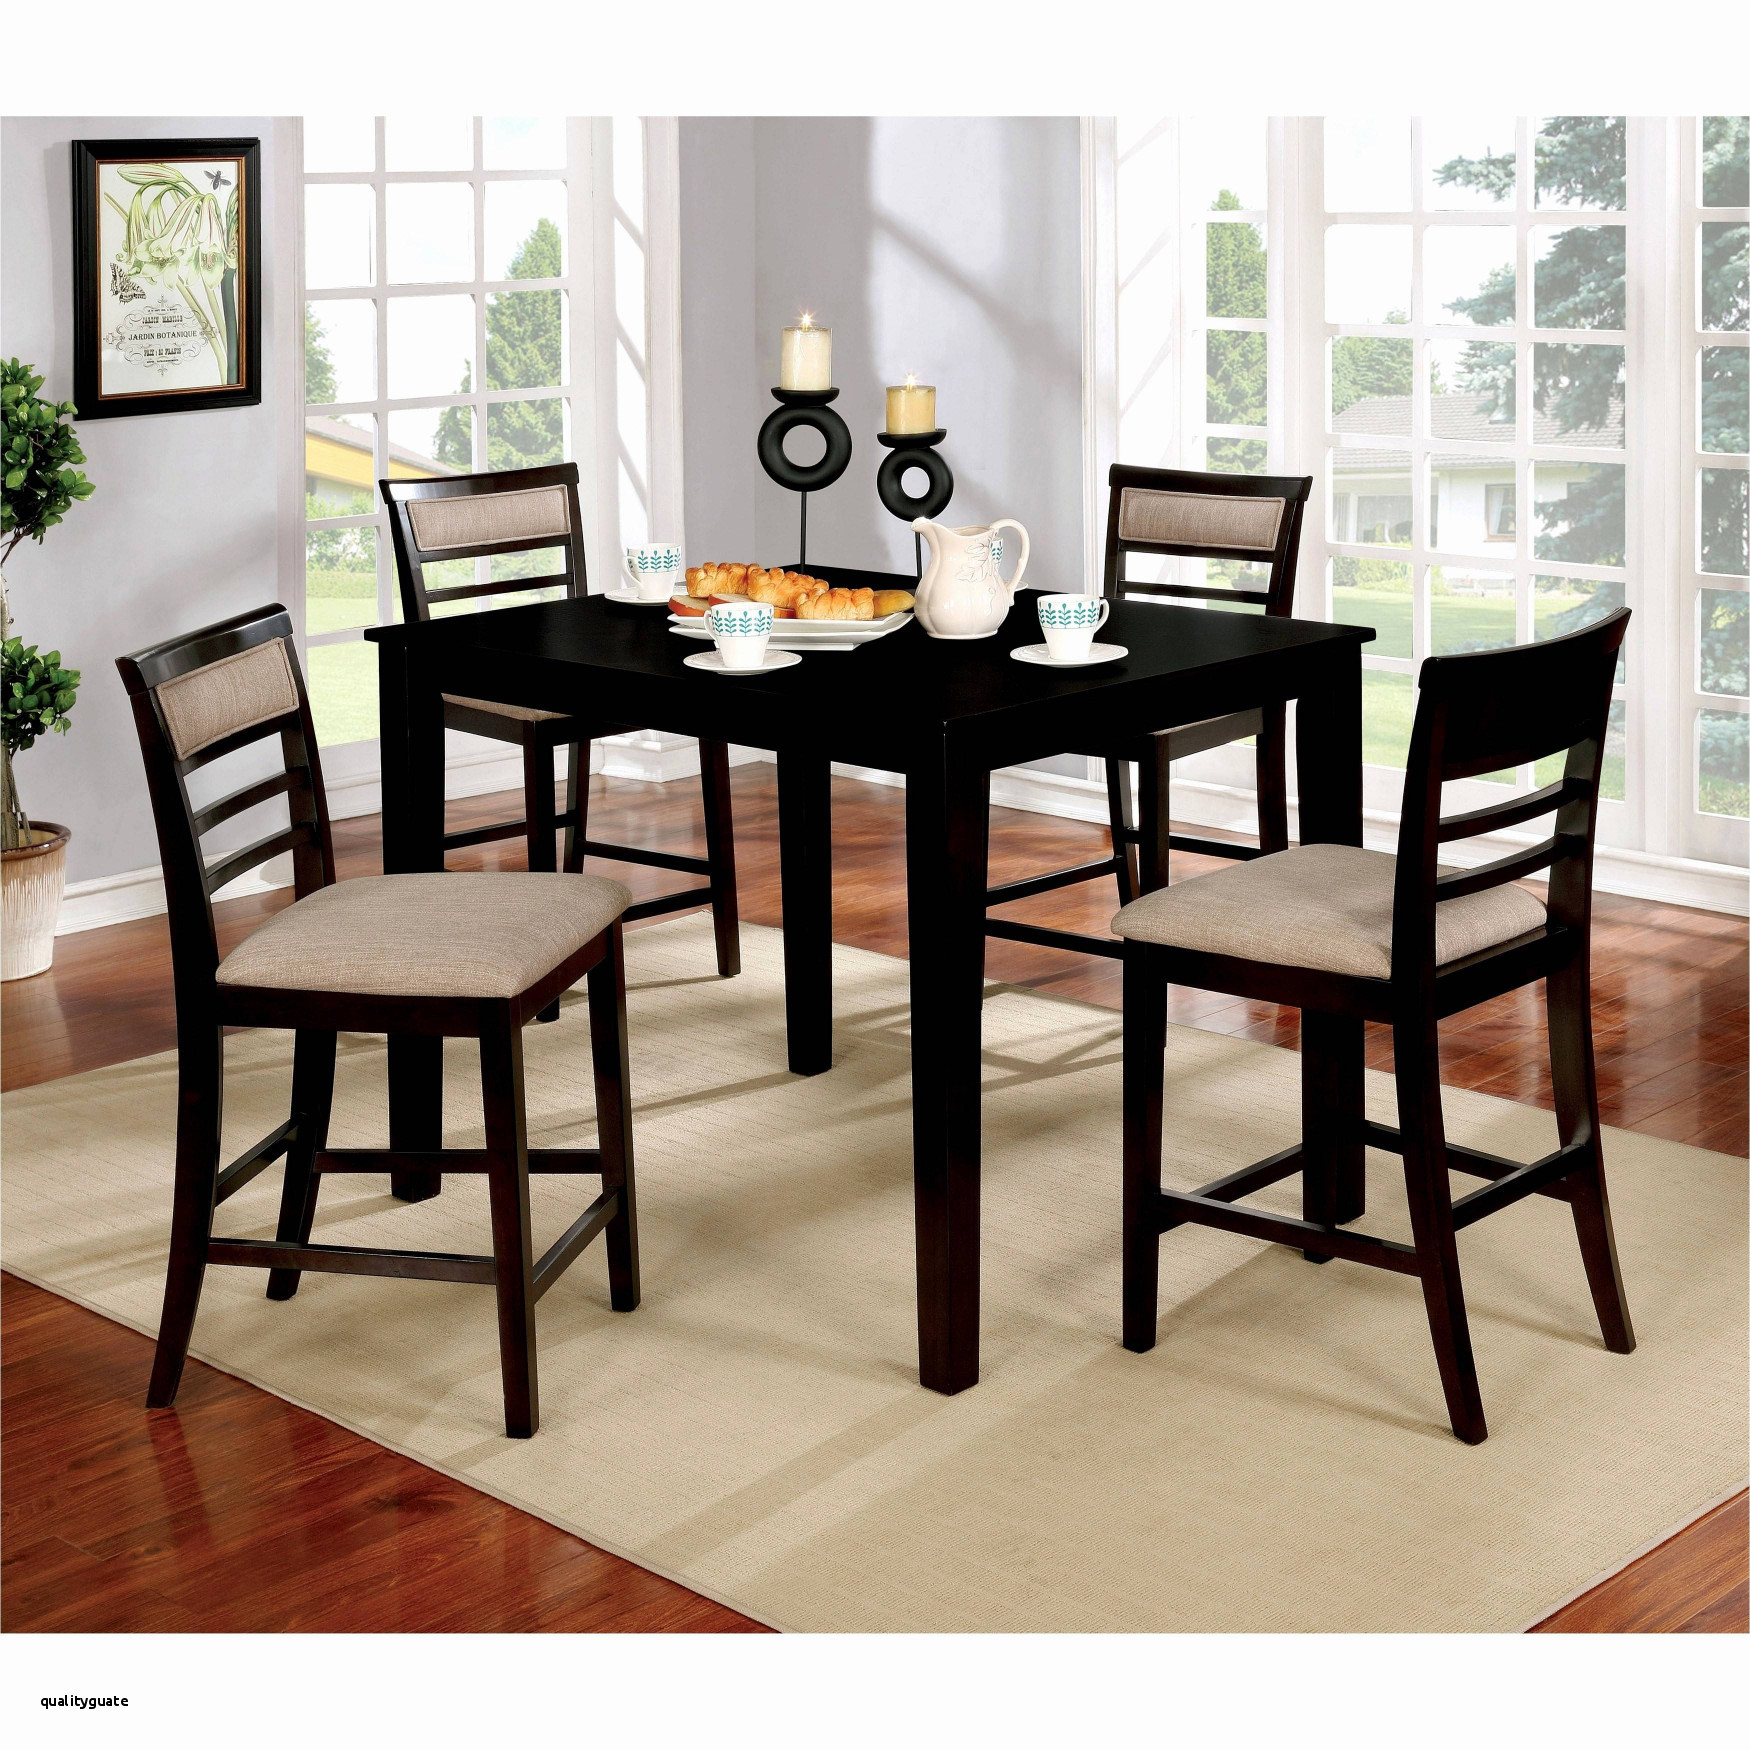 2 hardwood flooring of 34 cool granite dining table wallpaper regarding dining table for two beautiful 2 person kitchen table set fresh wicker outdoor sofa 0d patio